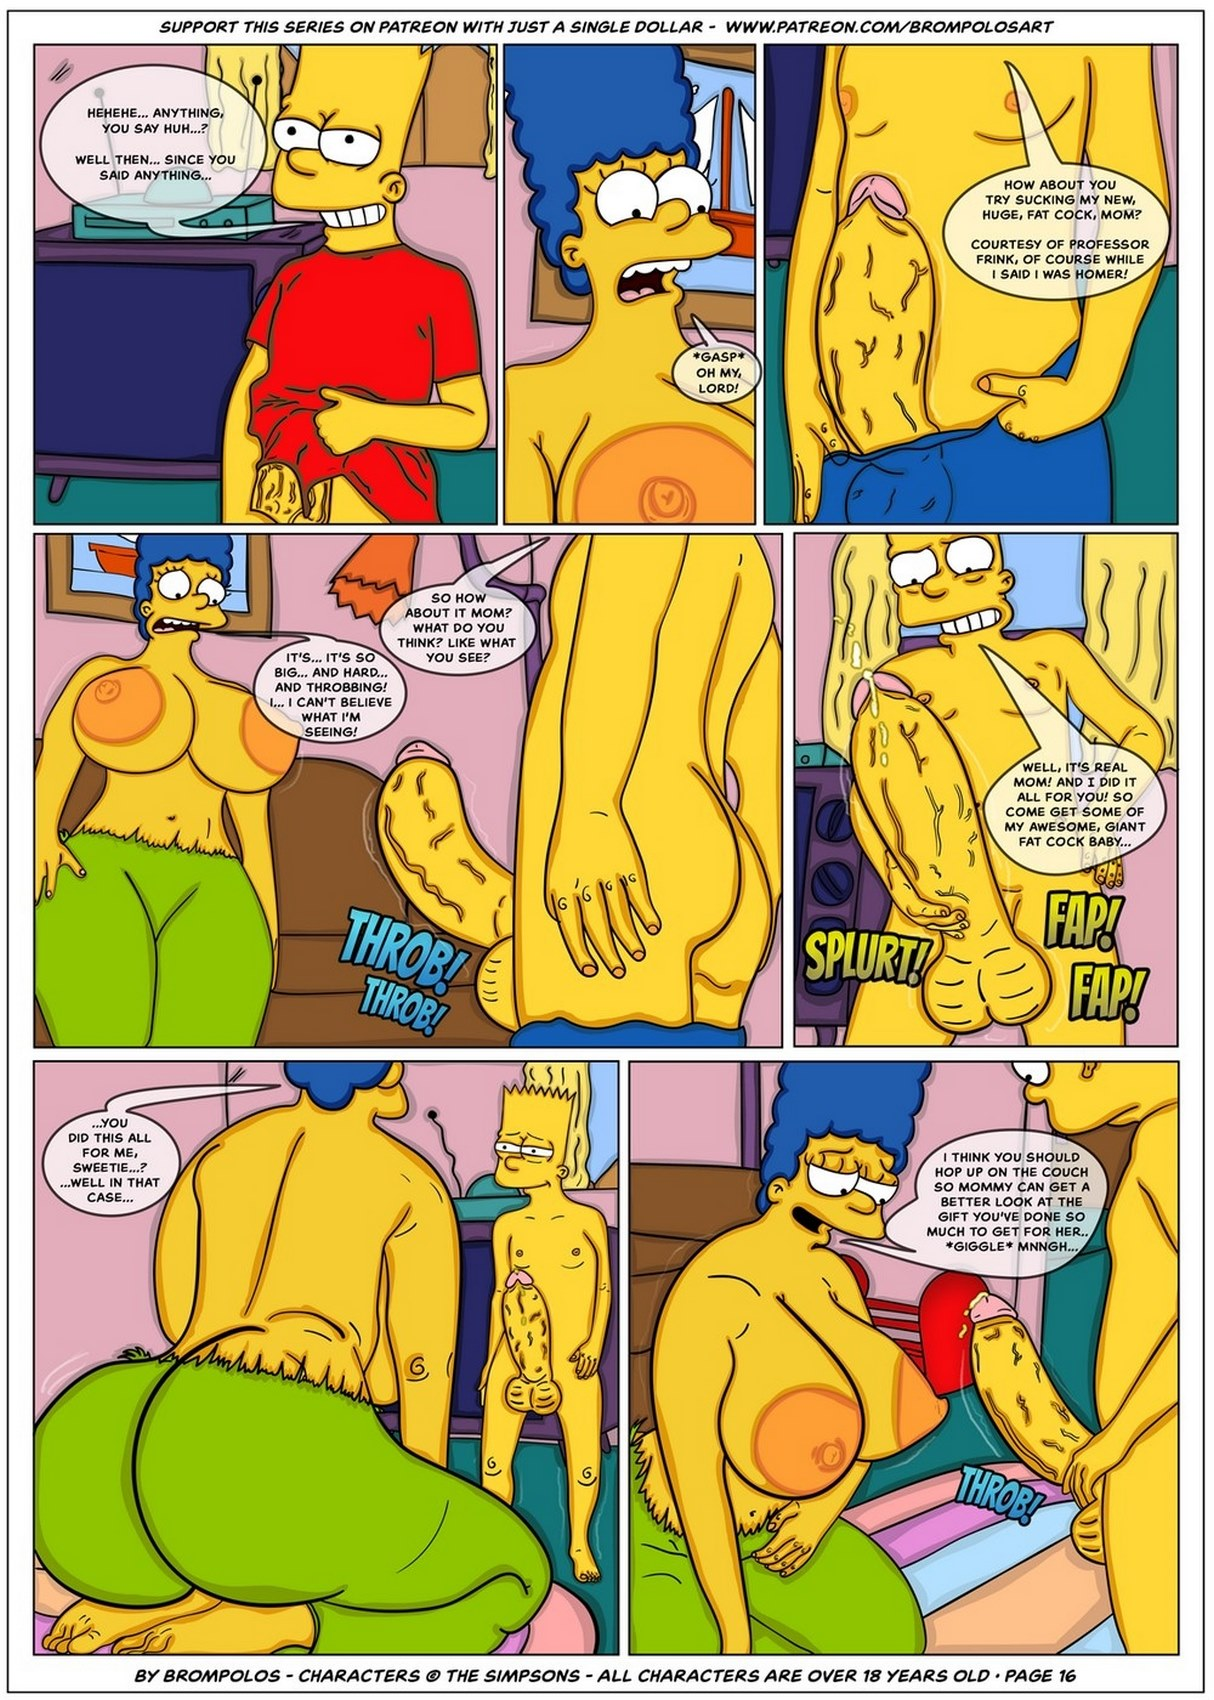 020 - The Simpsons are the sexenteins.